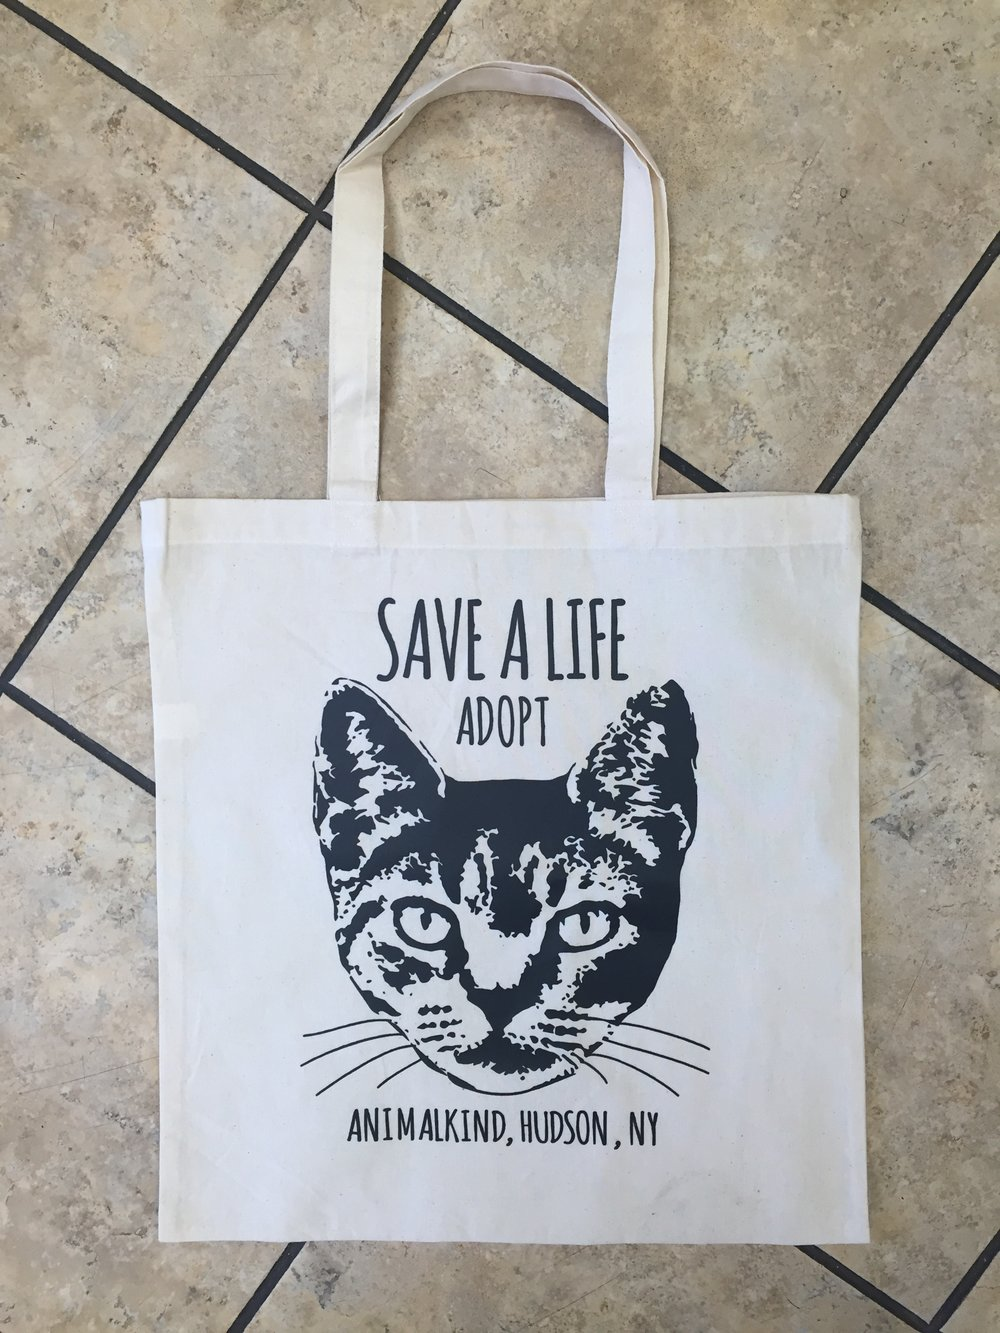 Raise $50.00 or more and get your free Team ANIMALKIND tote bag.